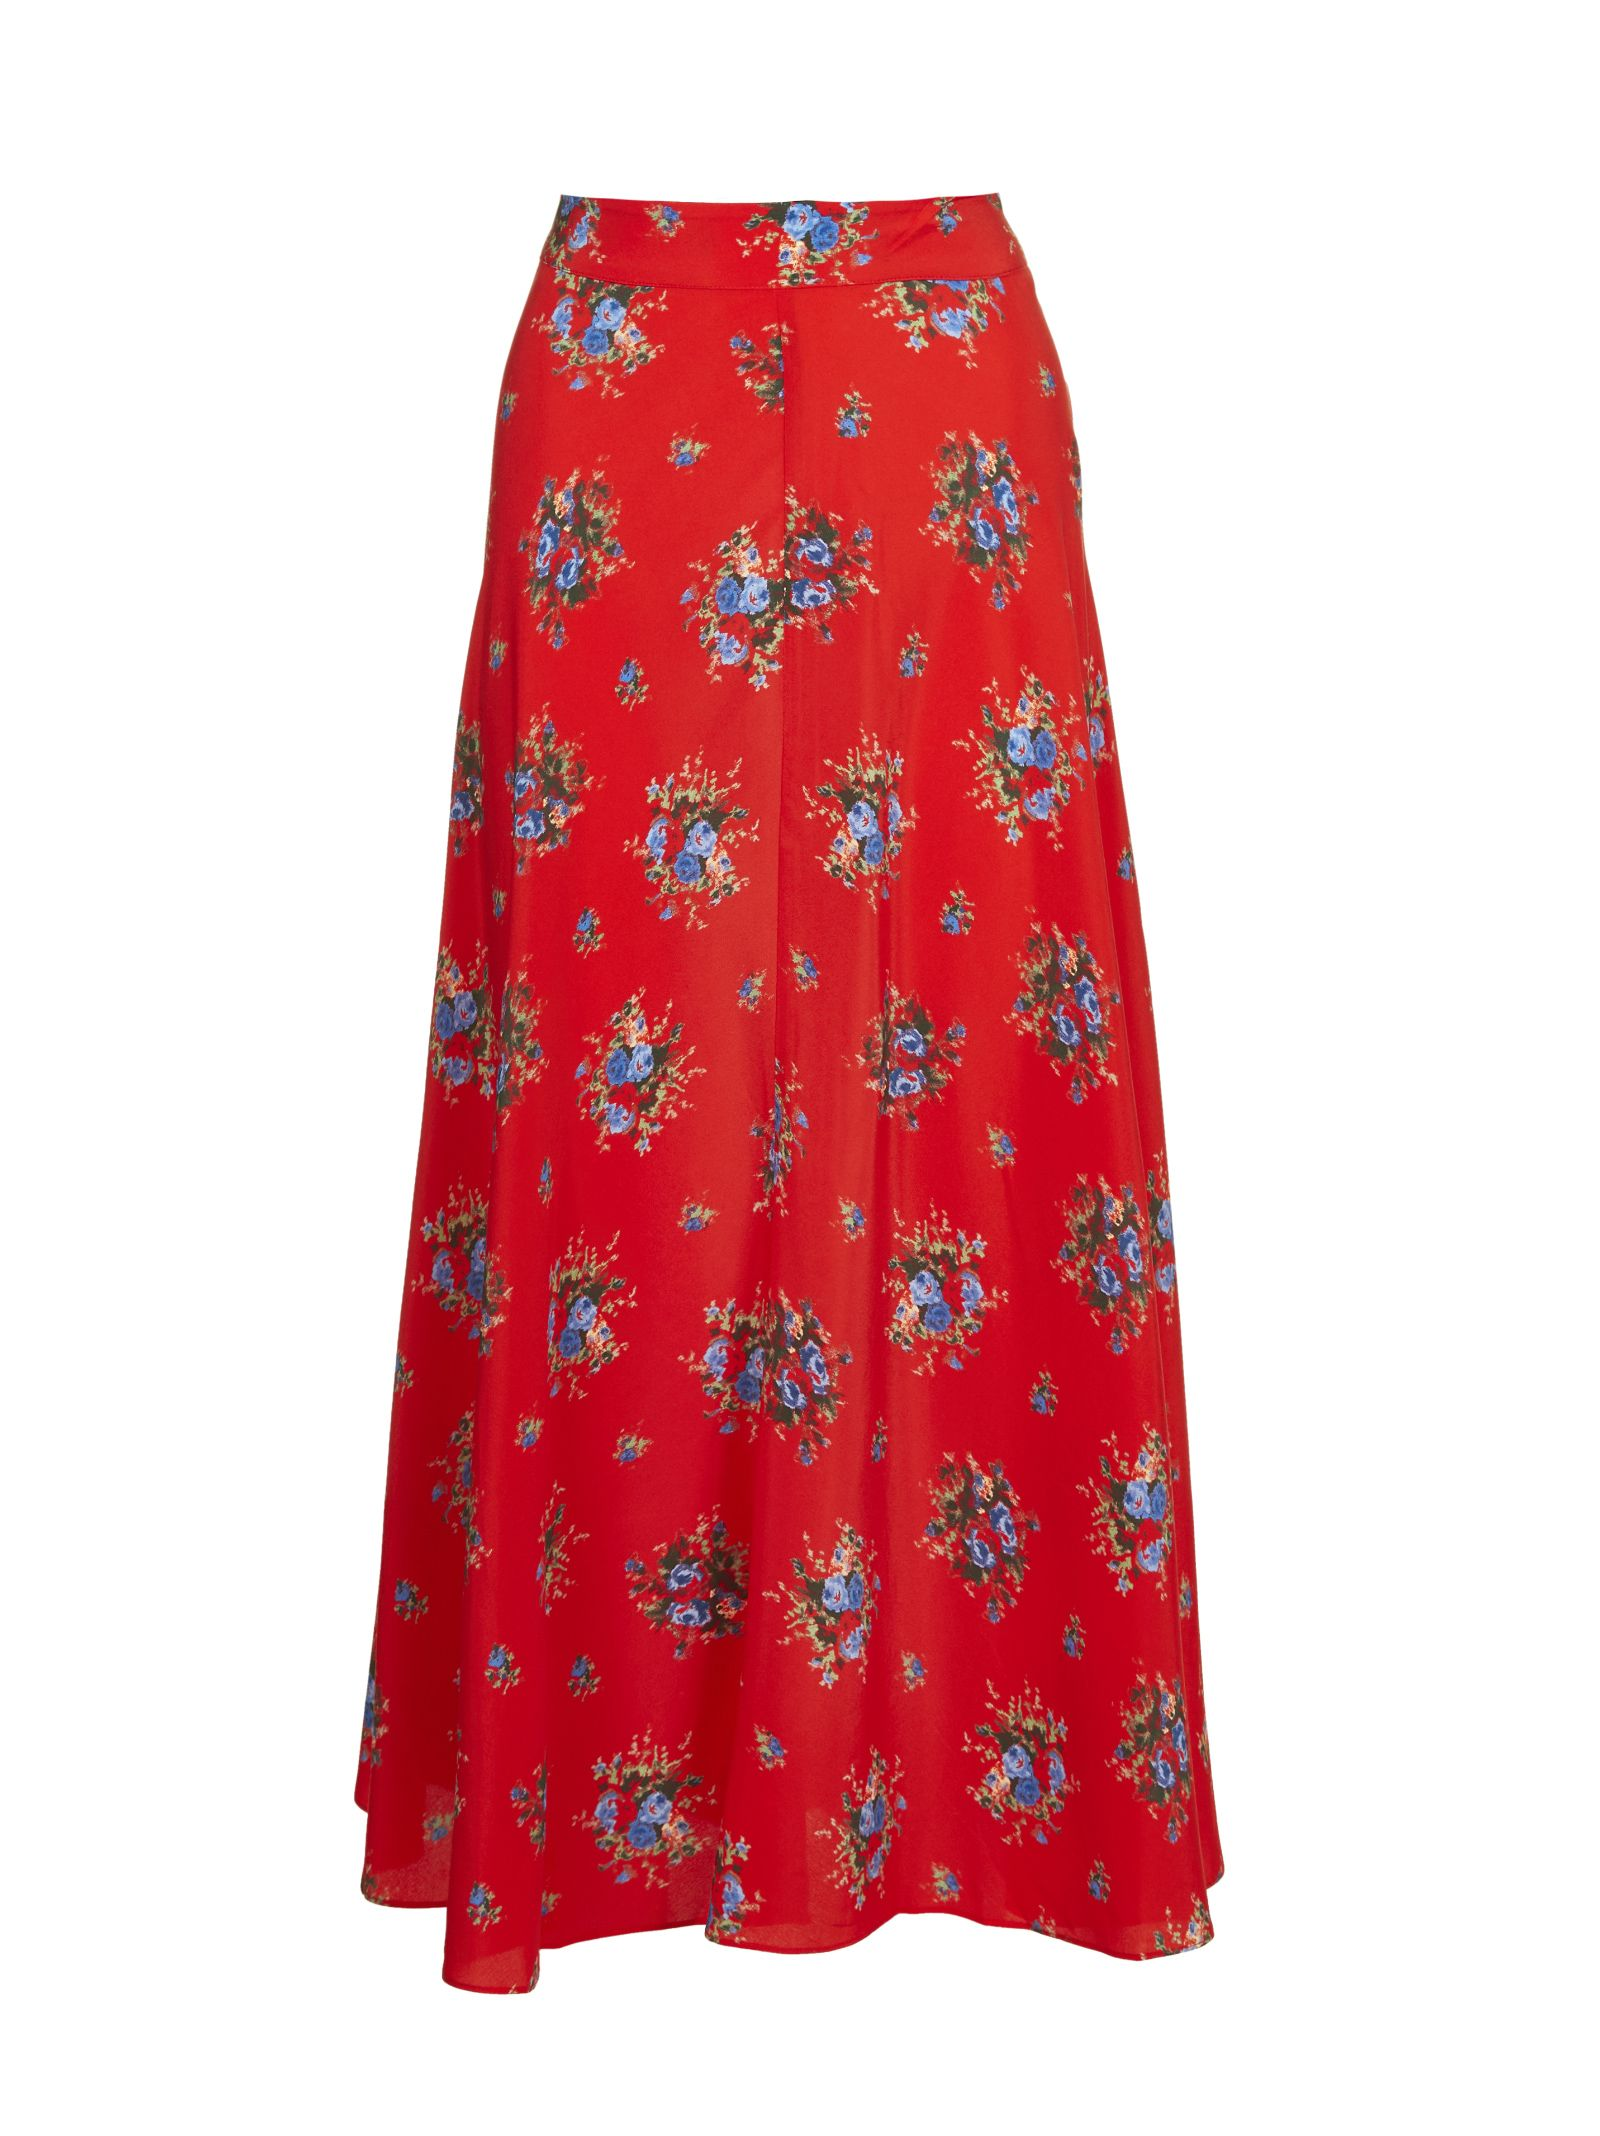 GANNI PRINTED SKIRT